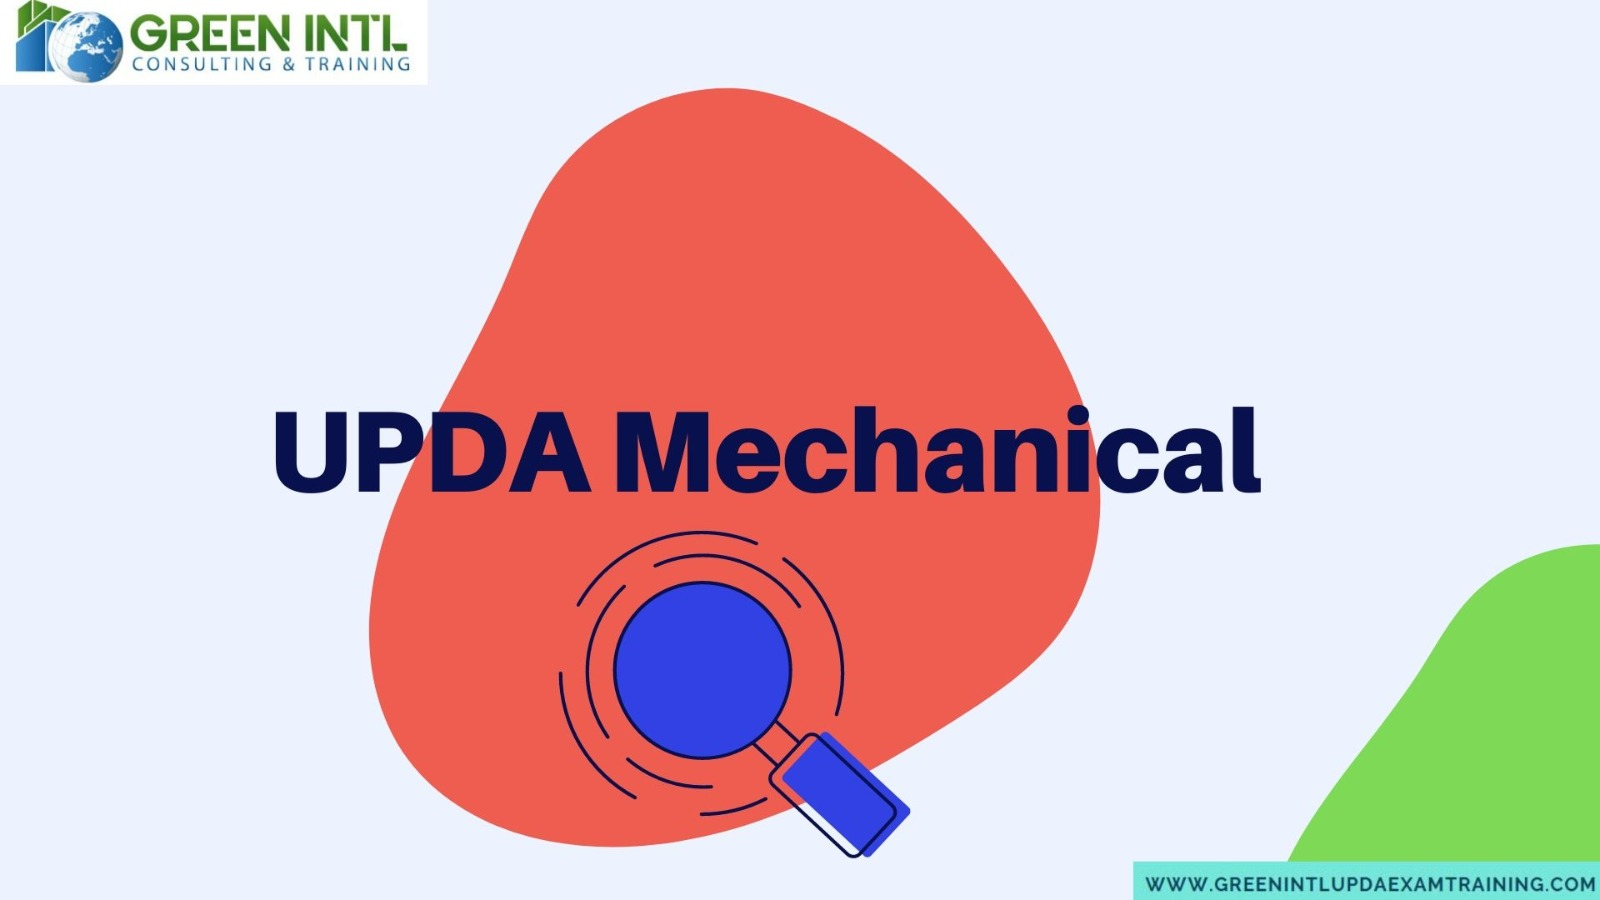 upda mechanical qatar exam upda mechanical engineering syllabus mmup mechanical exam